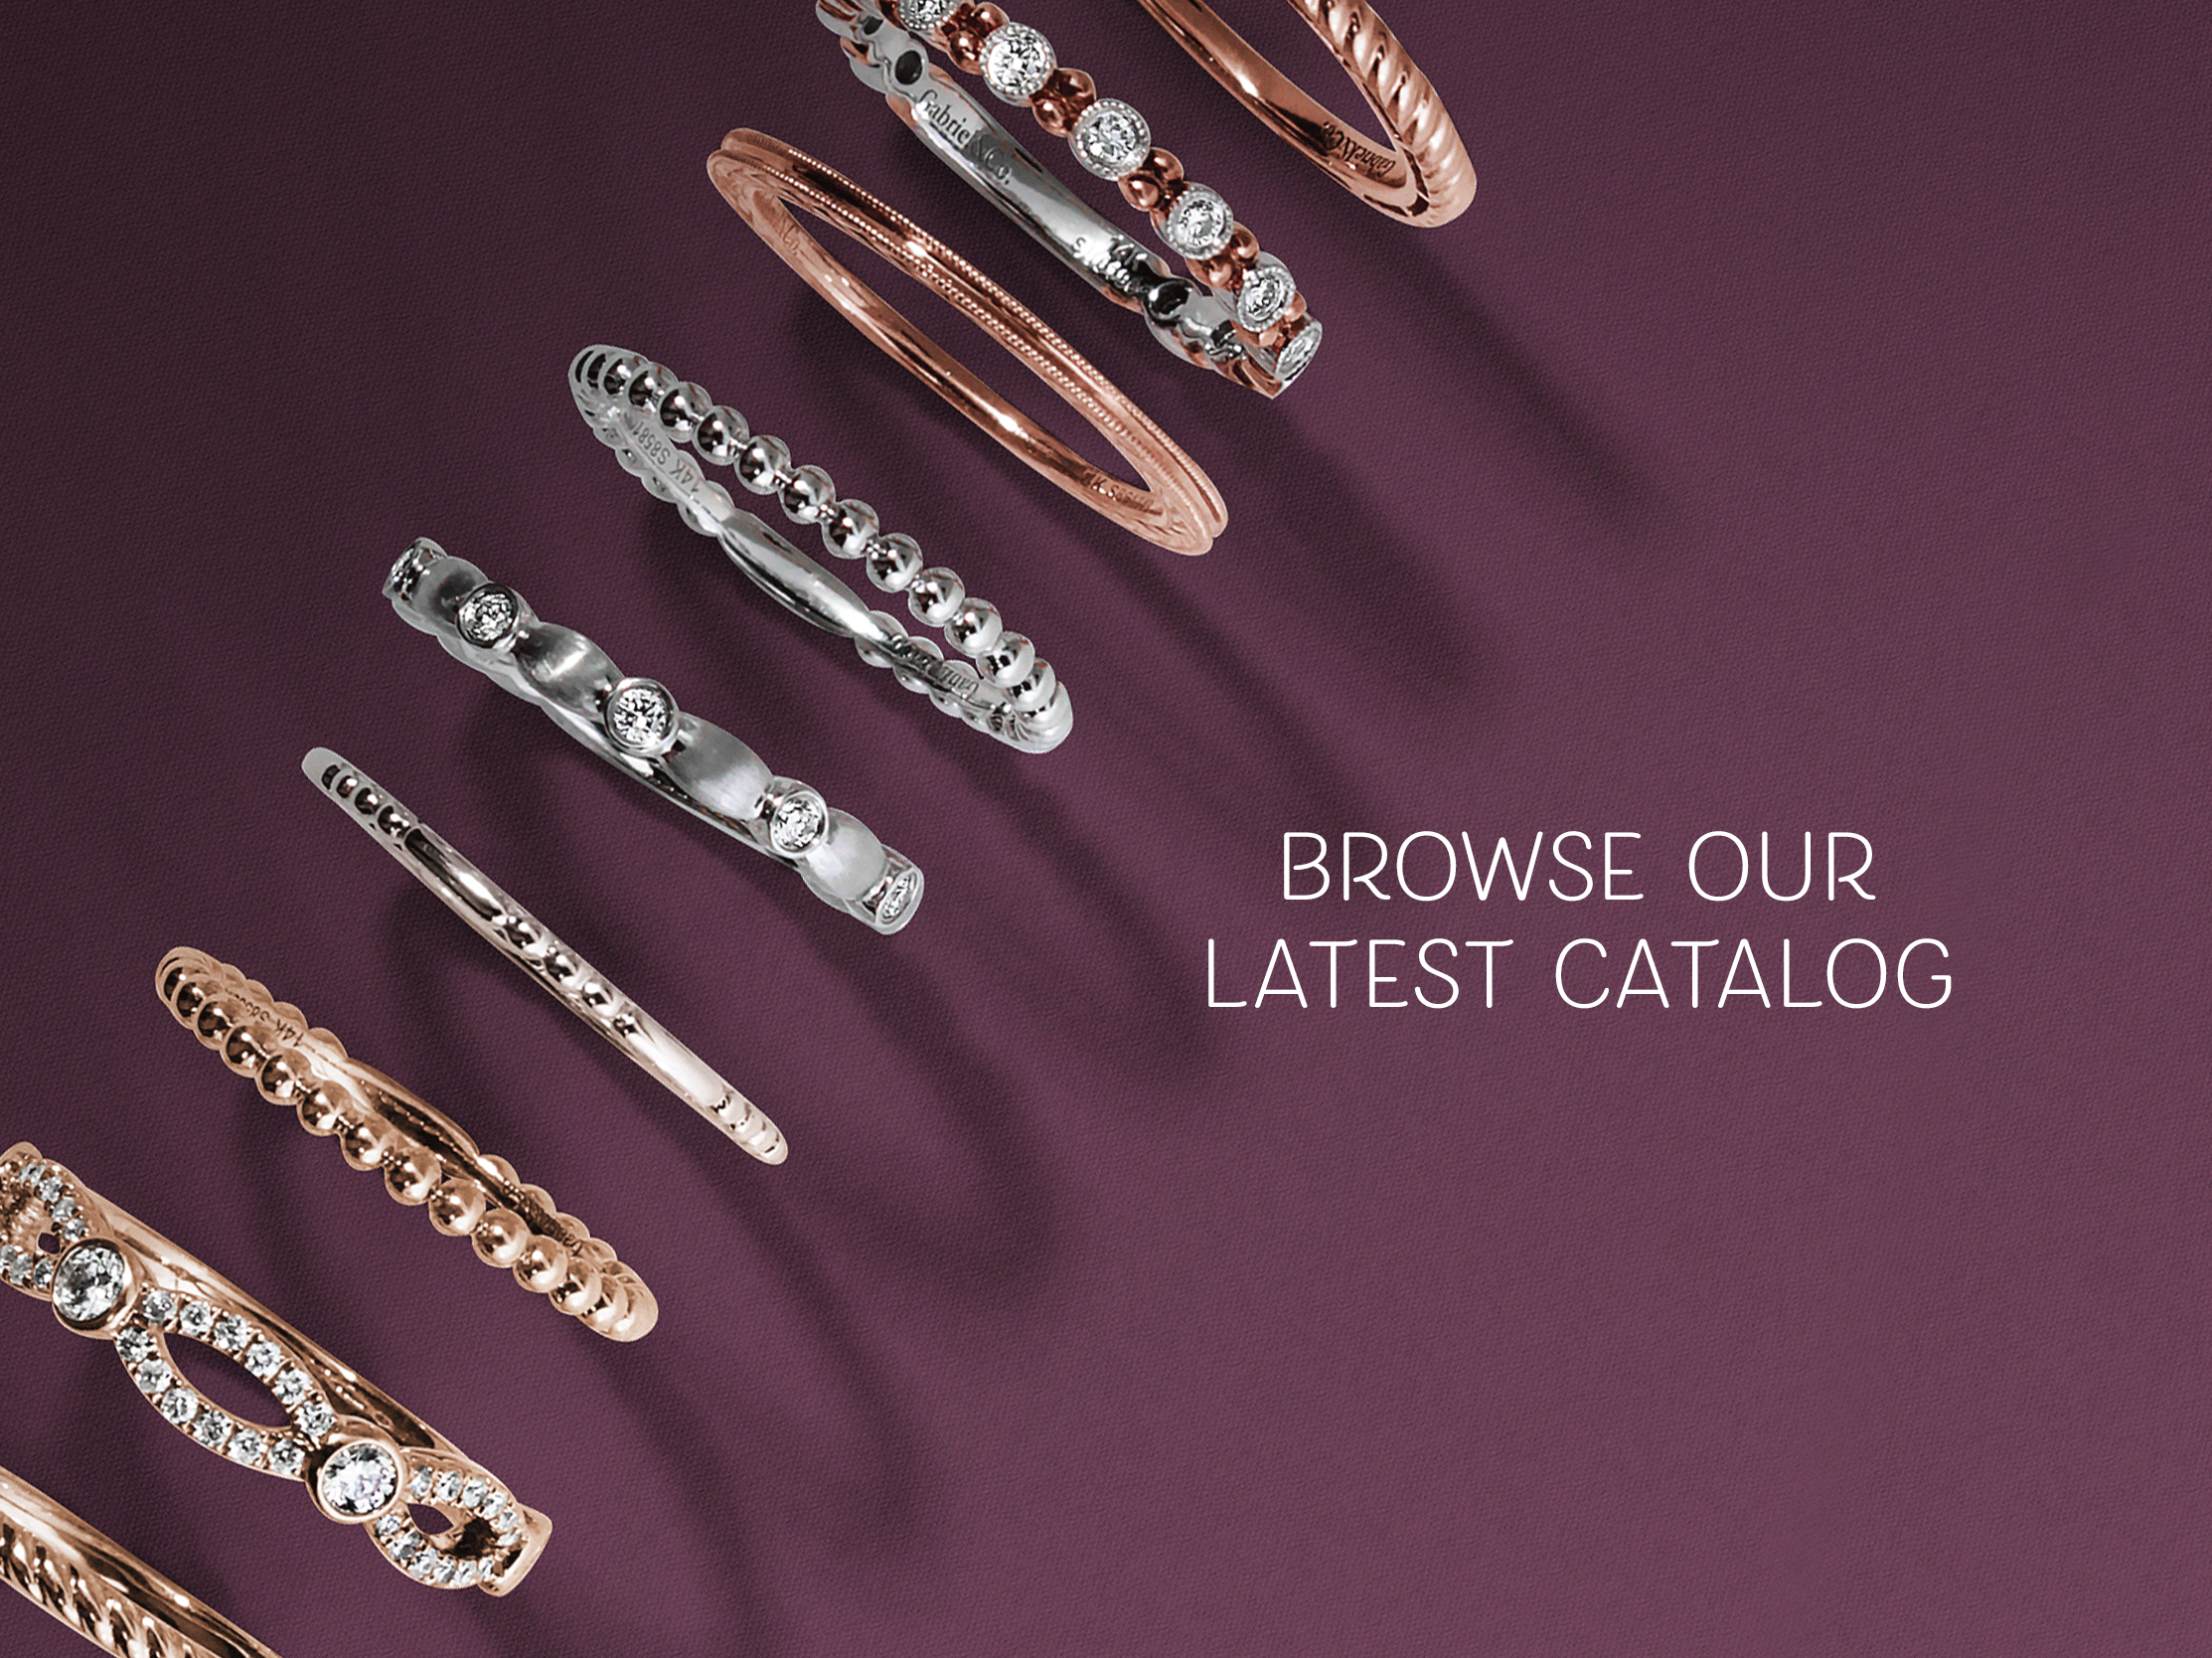 Browse our latest catalog.